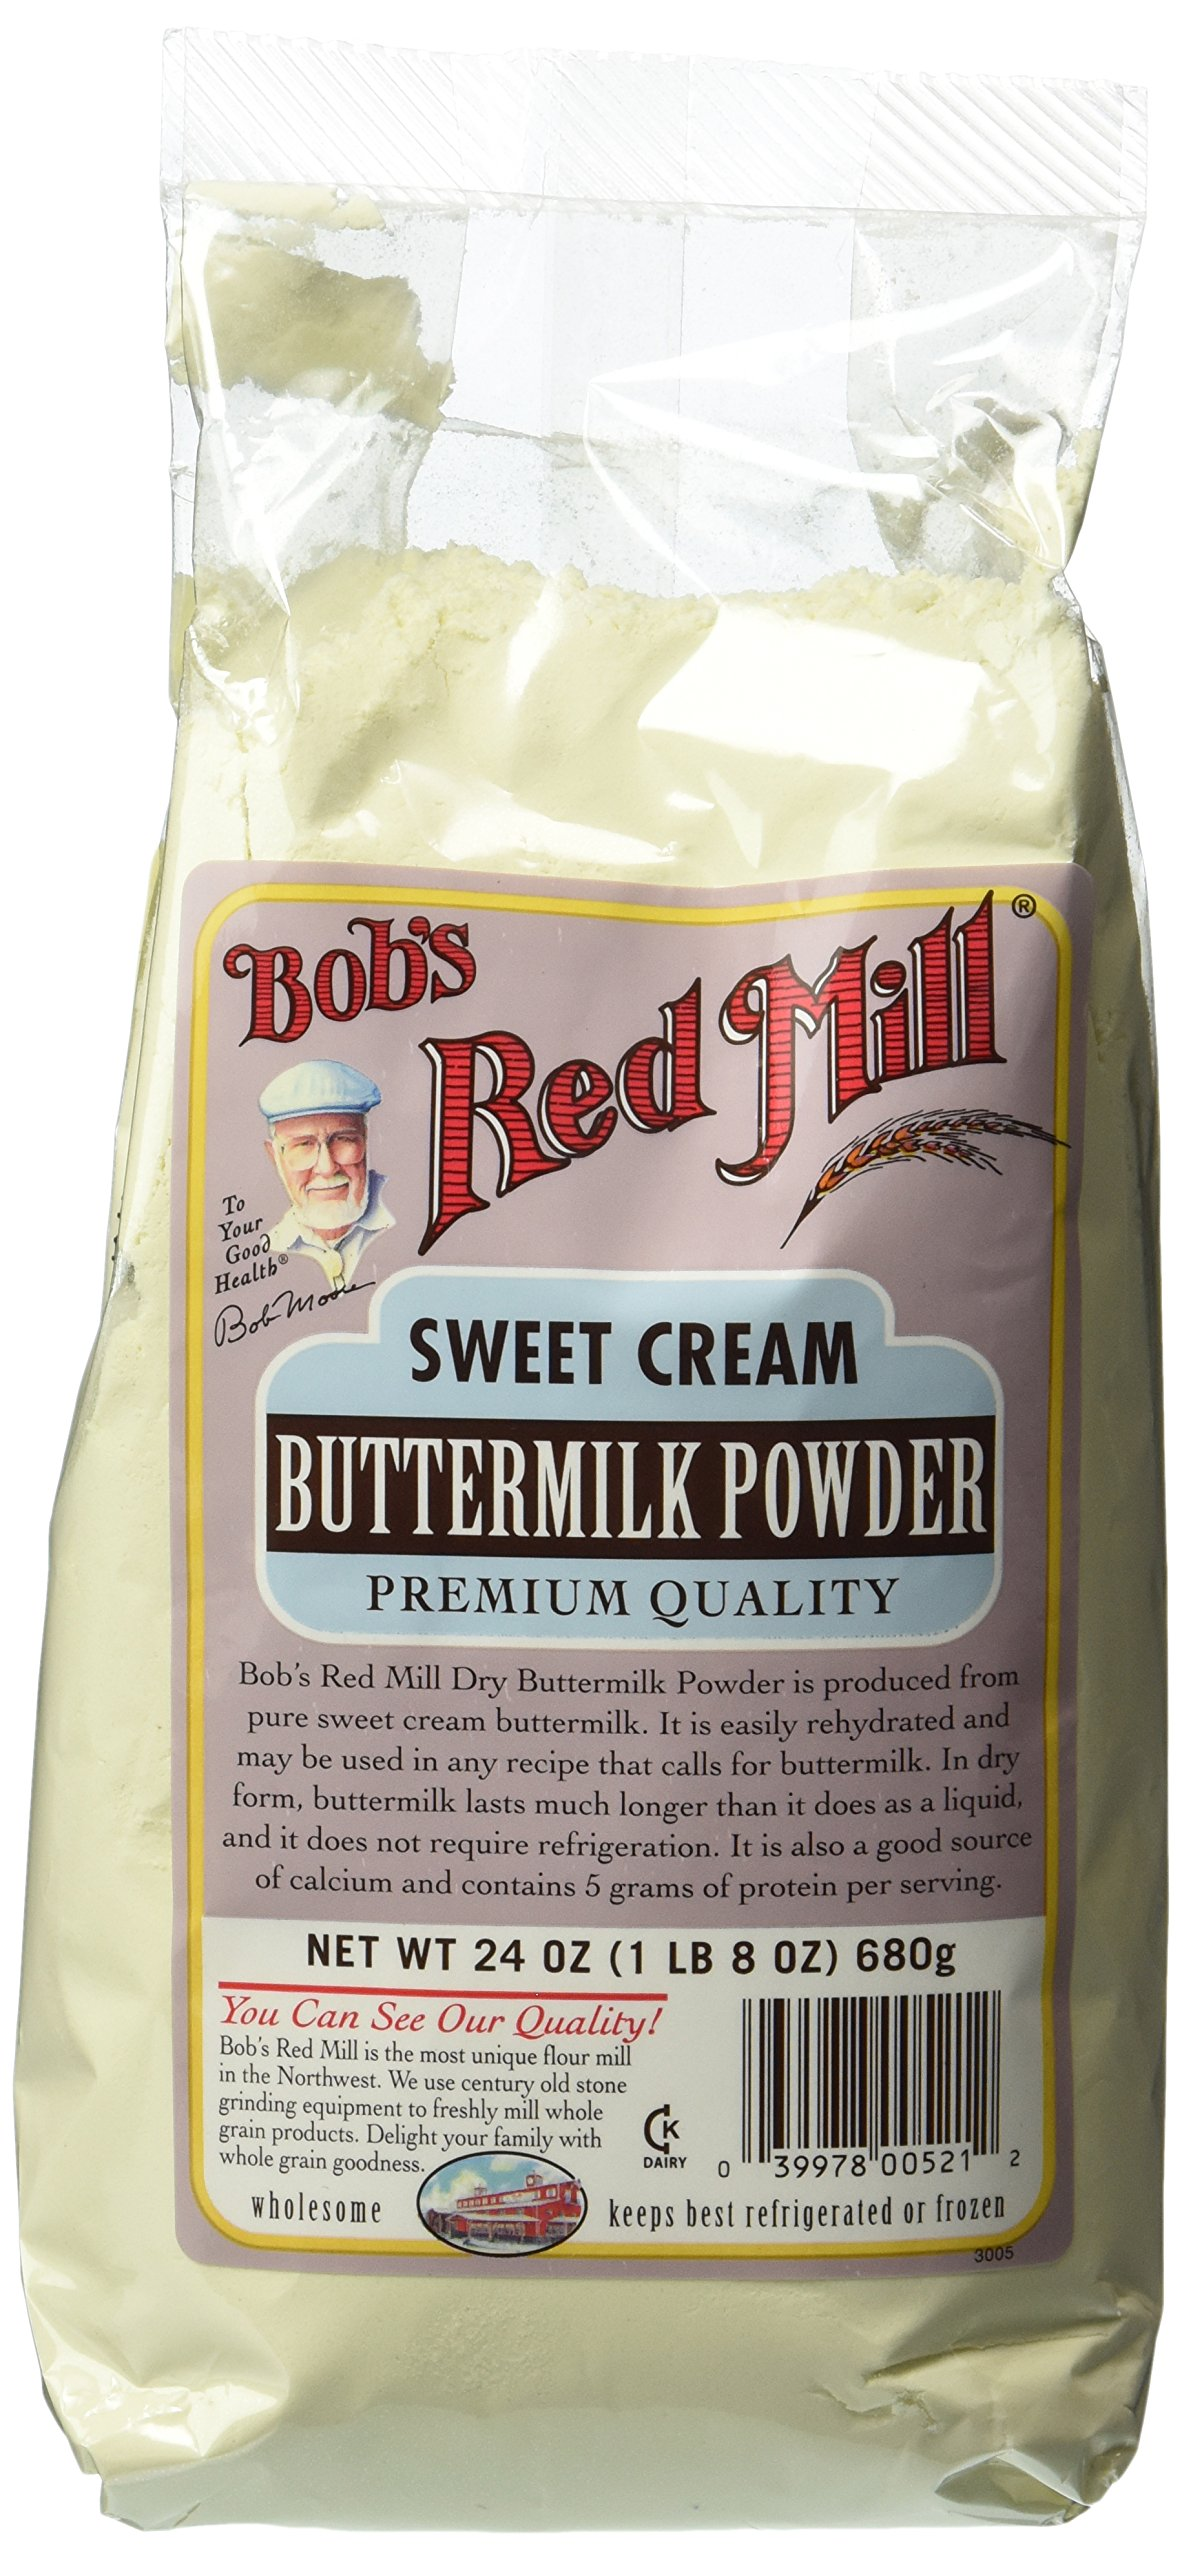 One 24 oz (1 lb 8 oz) 680 g Sweet Cream Buttermilk Powder